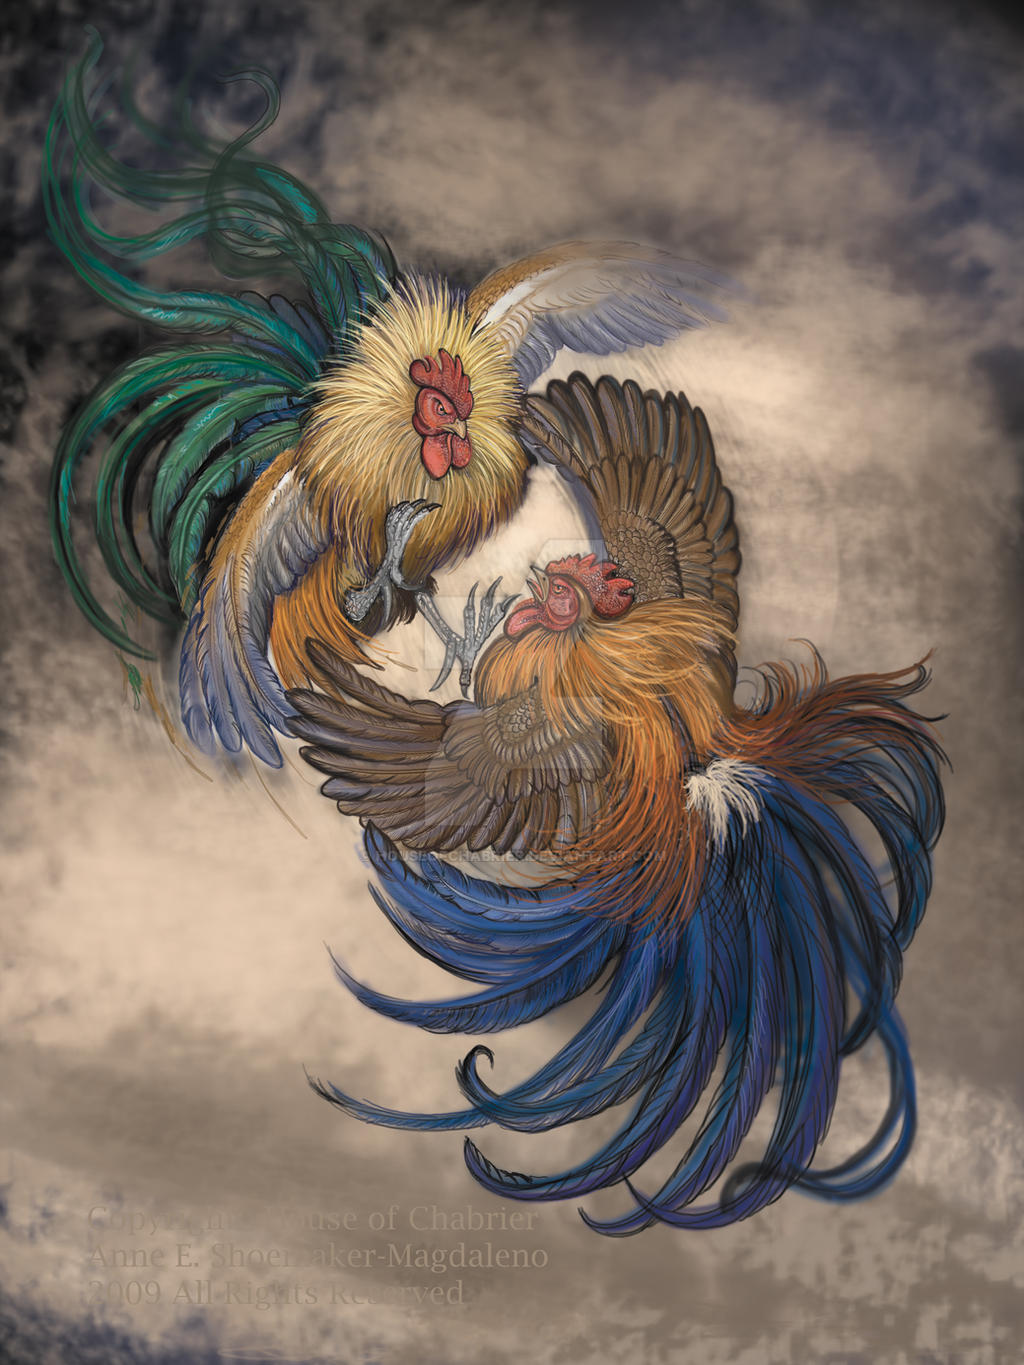 Cock fight adobephotoshop by houseofchabrier on deviantart - Cock designing ...